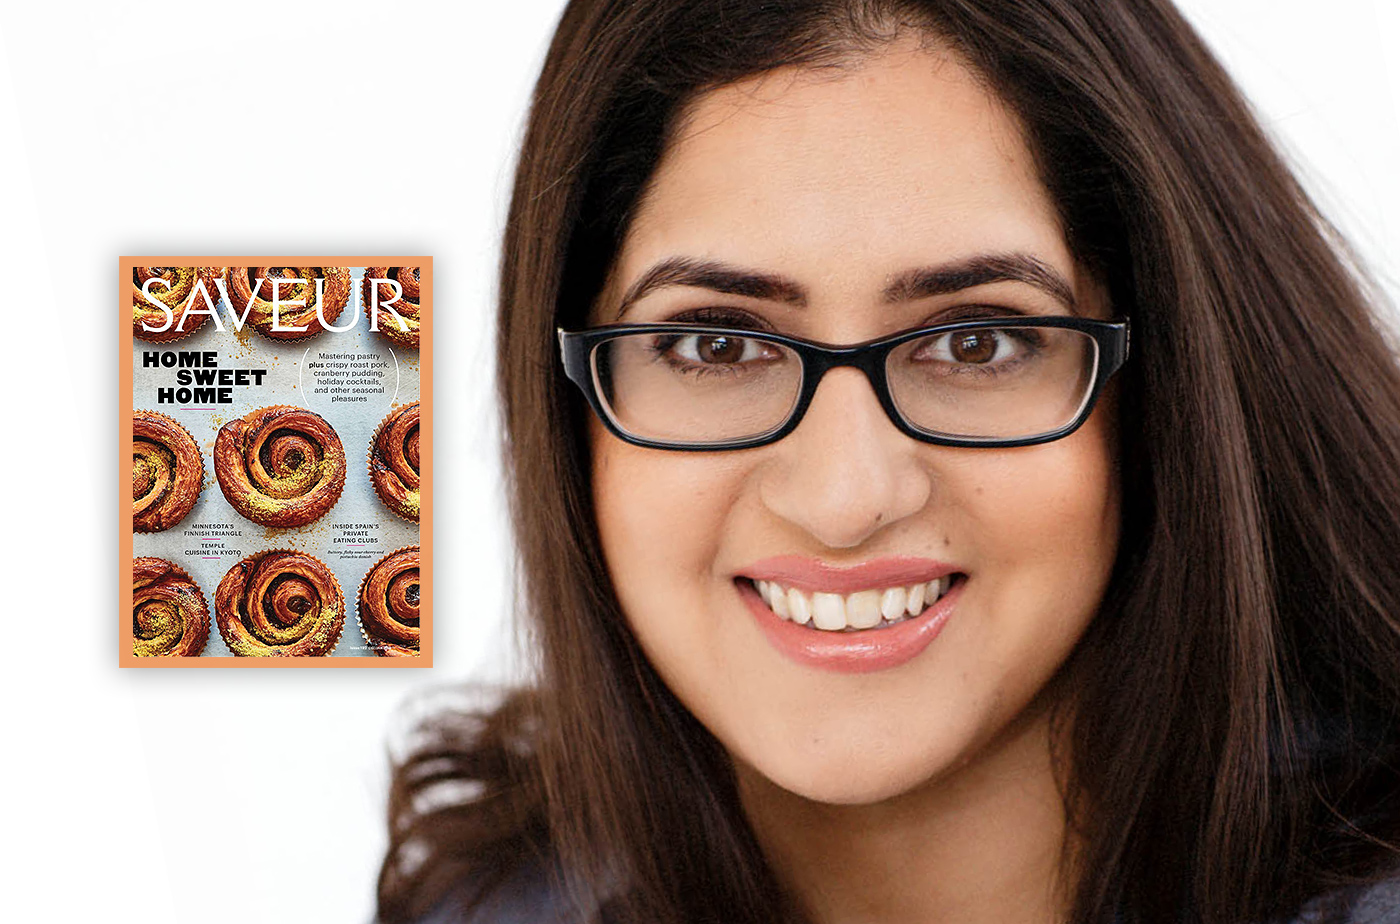 Catapult online classes: Pooja Makhijani, 3-Week Online Bootcamp: An Introduction to Food Writing, Nonfiction, Bootcamp